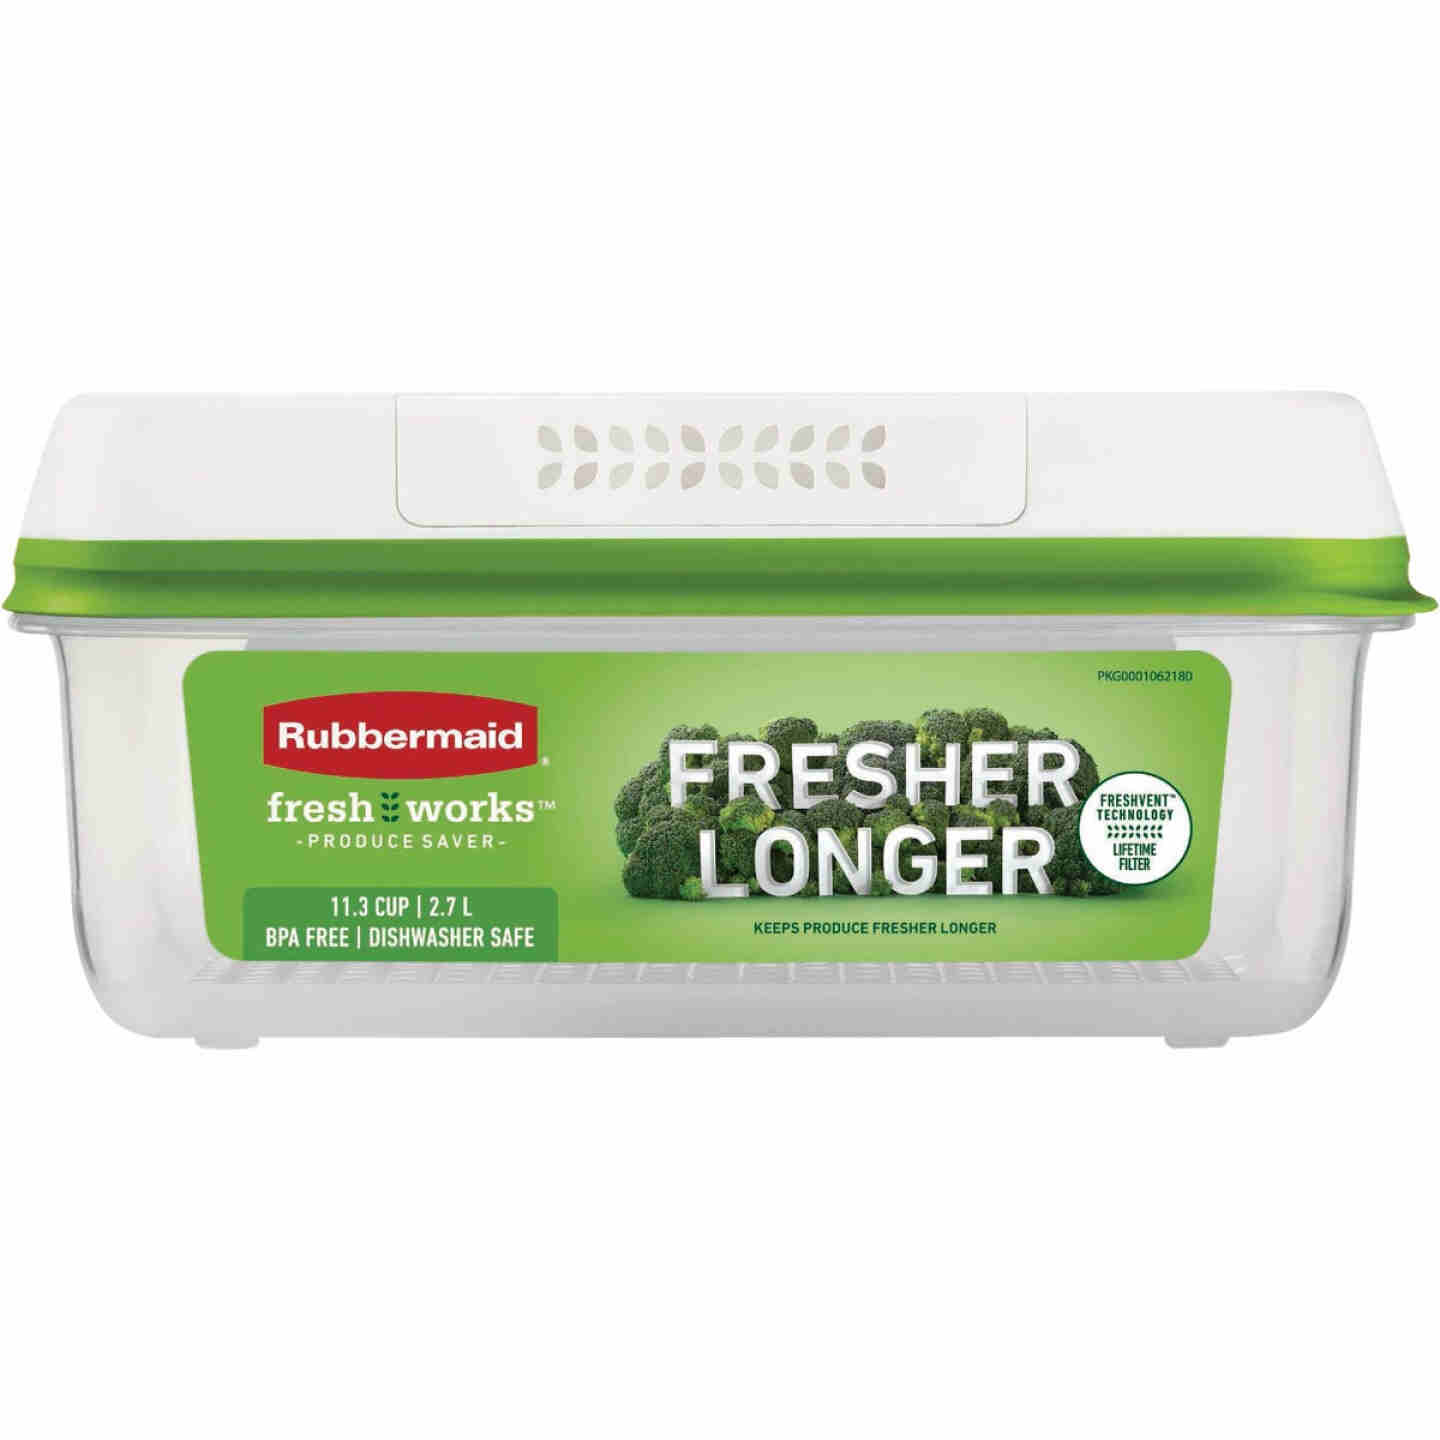 Rubbermaid Freshworks Produce Saver 11.3 C. Rectangle Produce Container Image 1